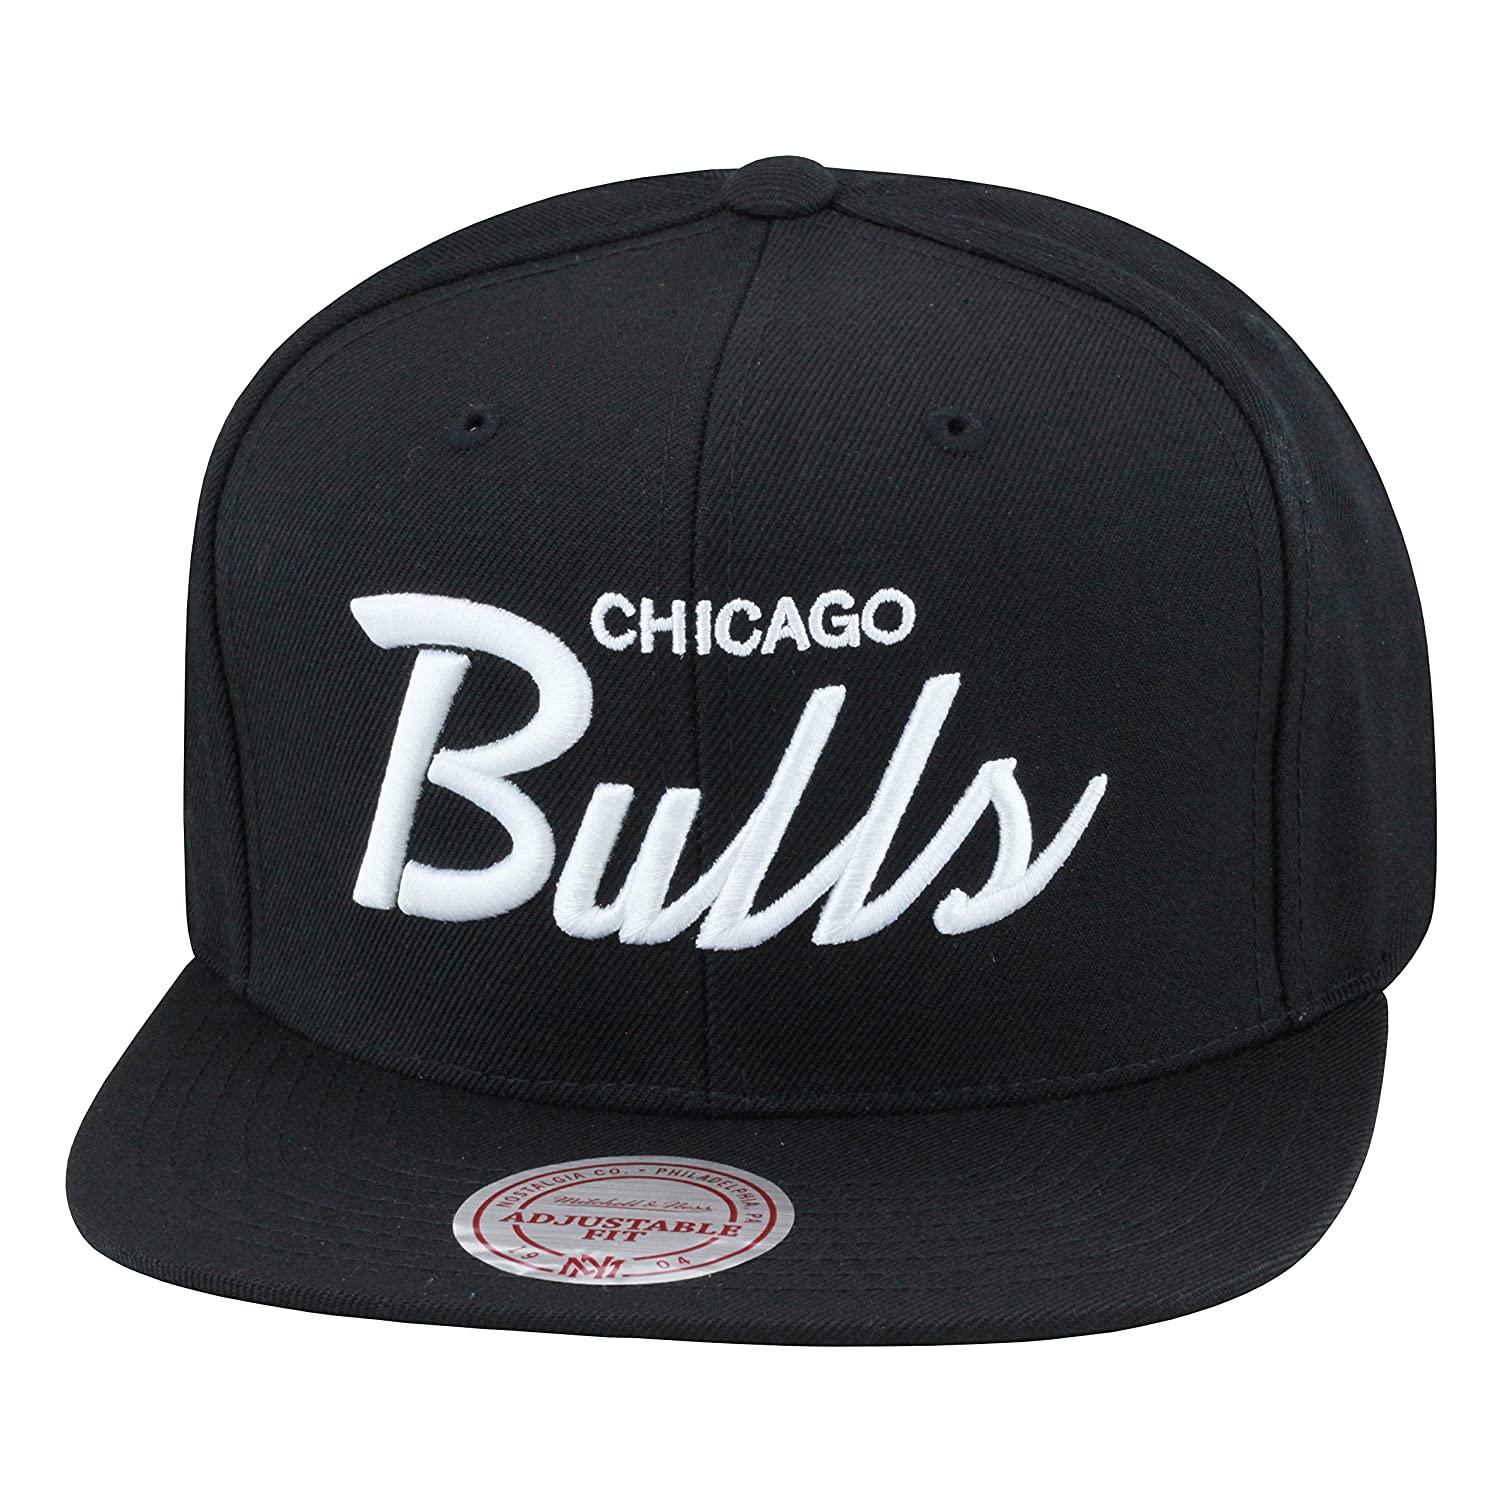 38d815aad6b Amazon.com  Mitchell   Ness Chicago Bulls Snapback Hat All Black White